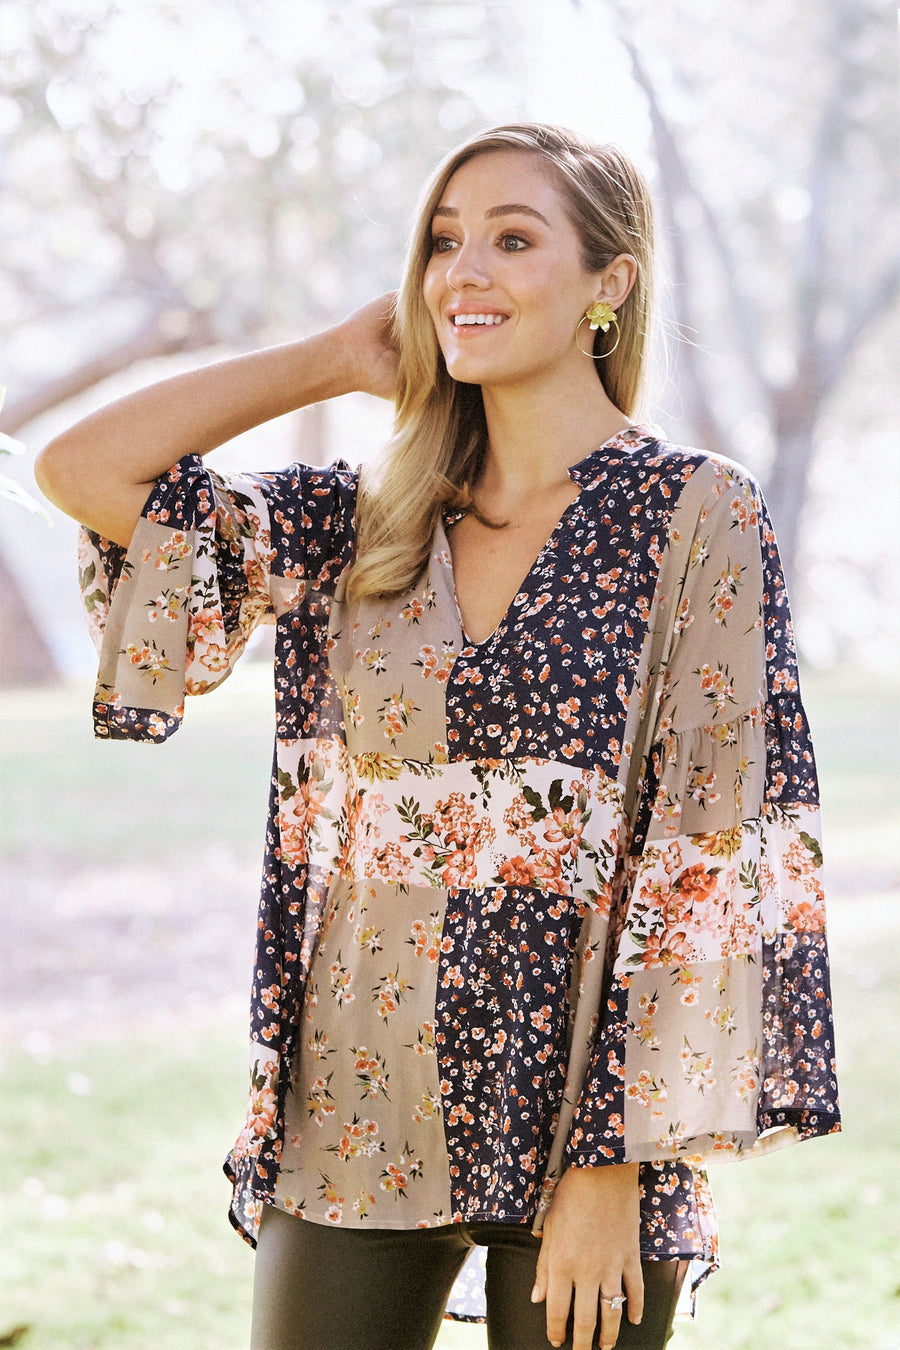 Lucy Floral Patchwork Top